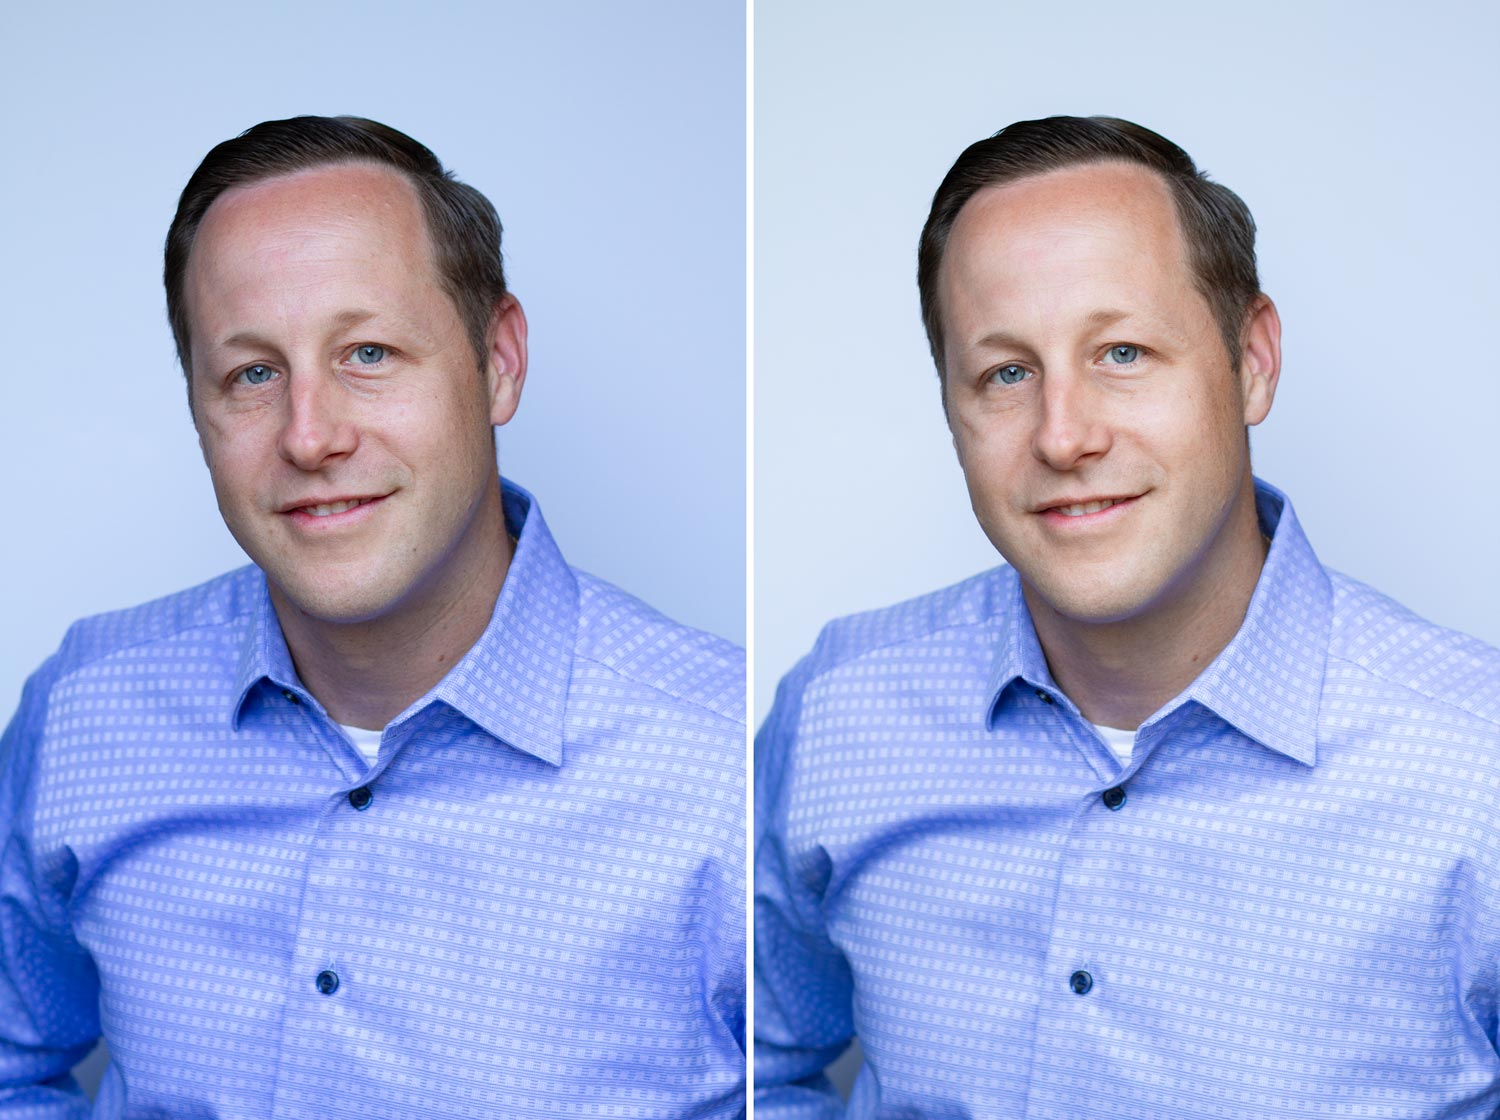 Professional Headshot before and after retouching